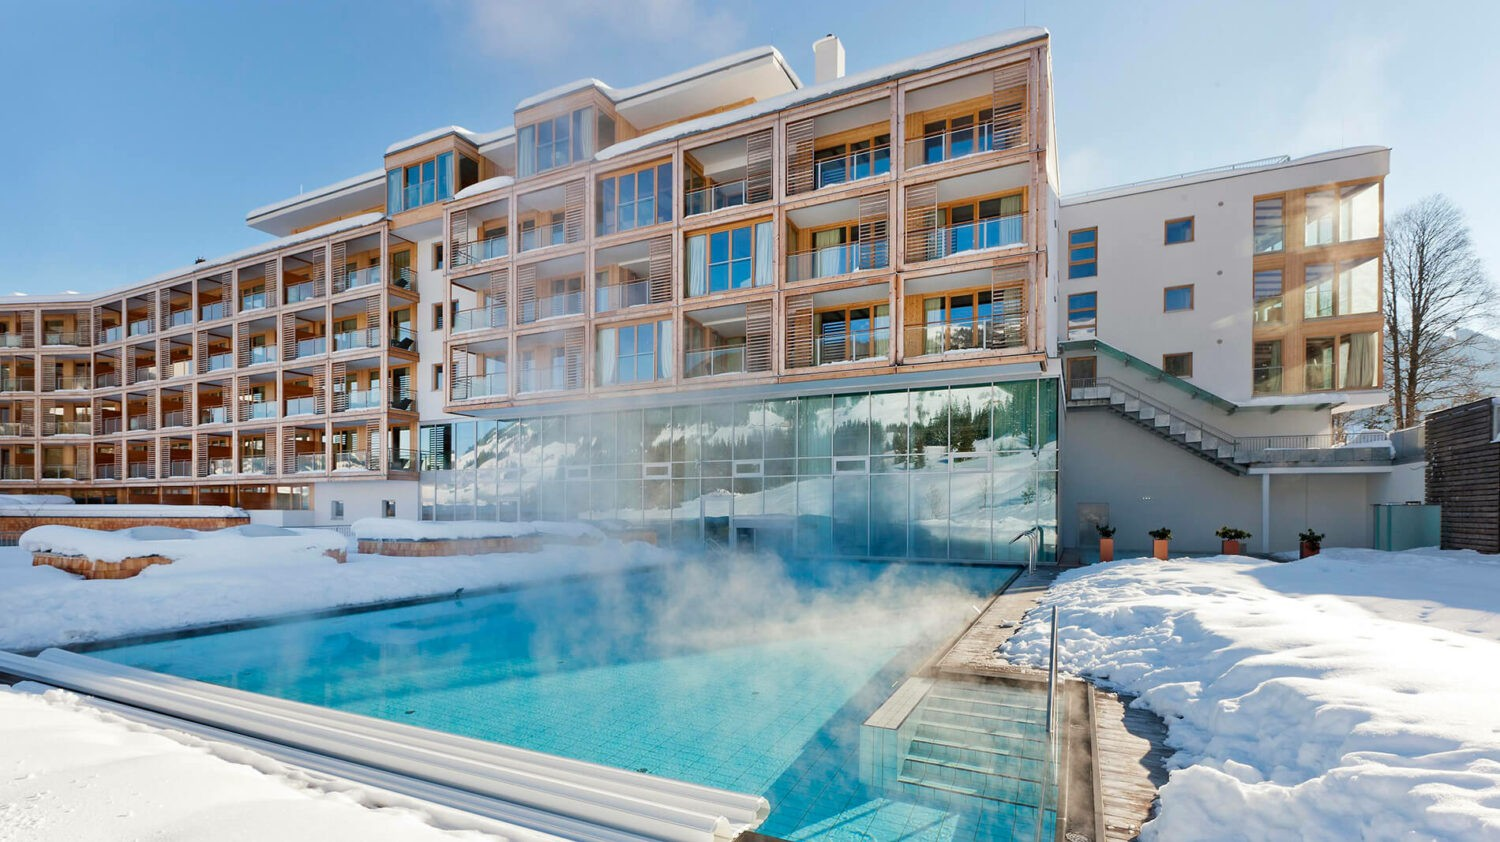 kempinski-das-tirol-winter-pool